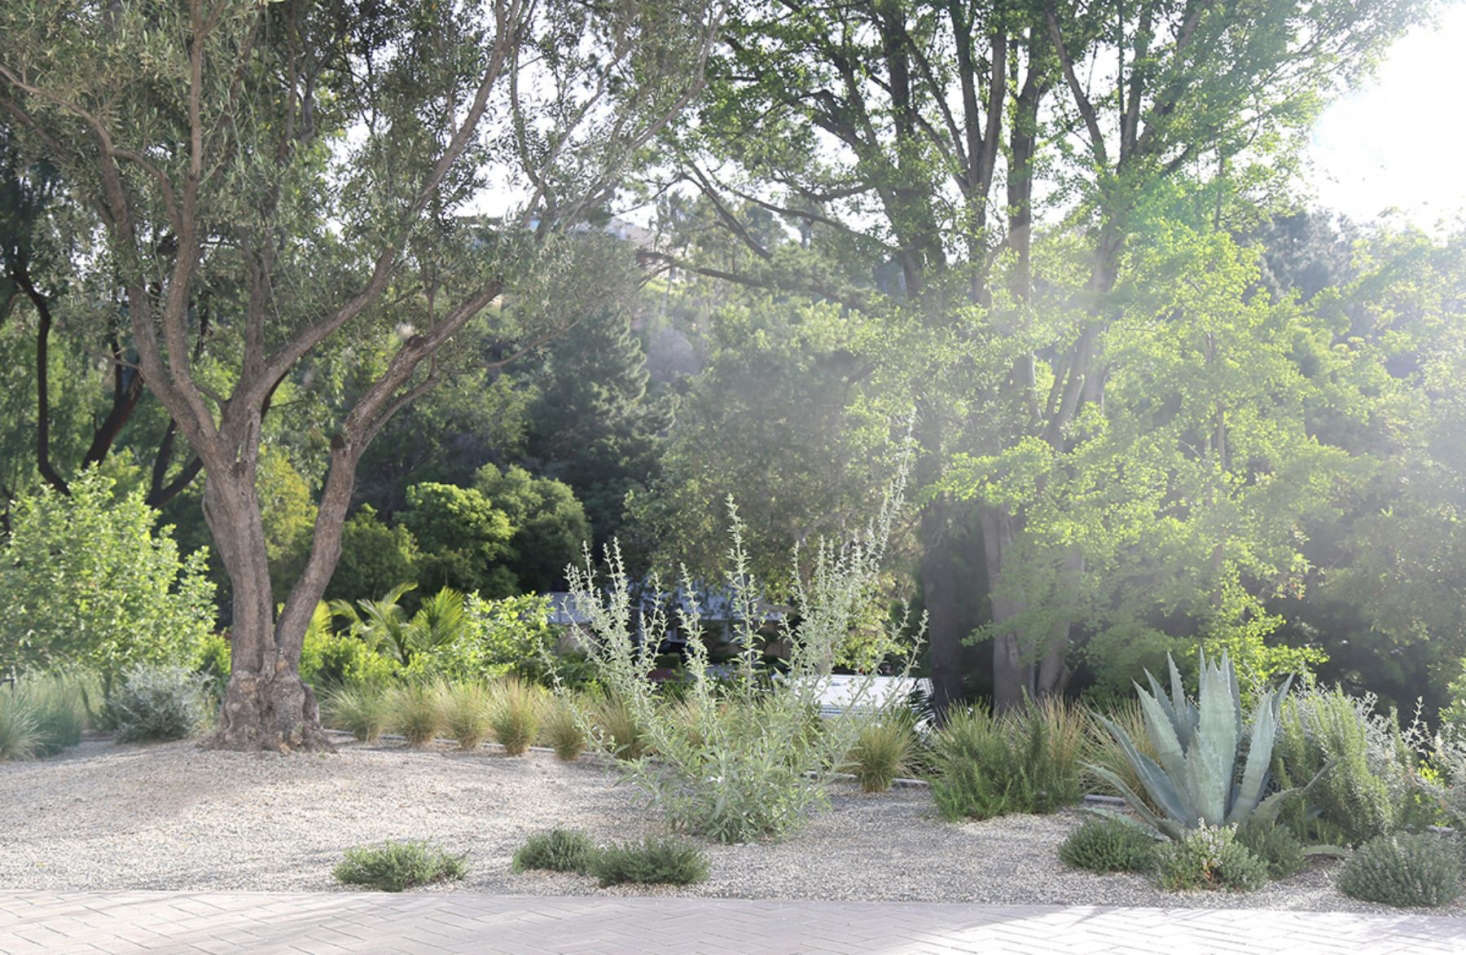 Studio Terremoto designed a Bel Air Dream Pop landscape featuring century agave rooted in a bed of decomposed granite. See more of this project in our  Considered Design Awards contest.